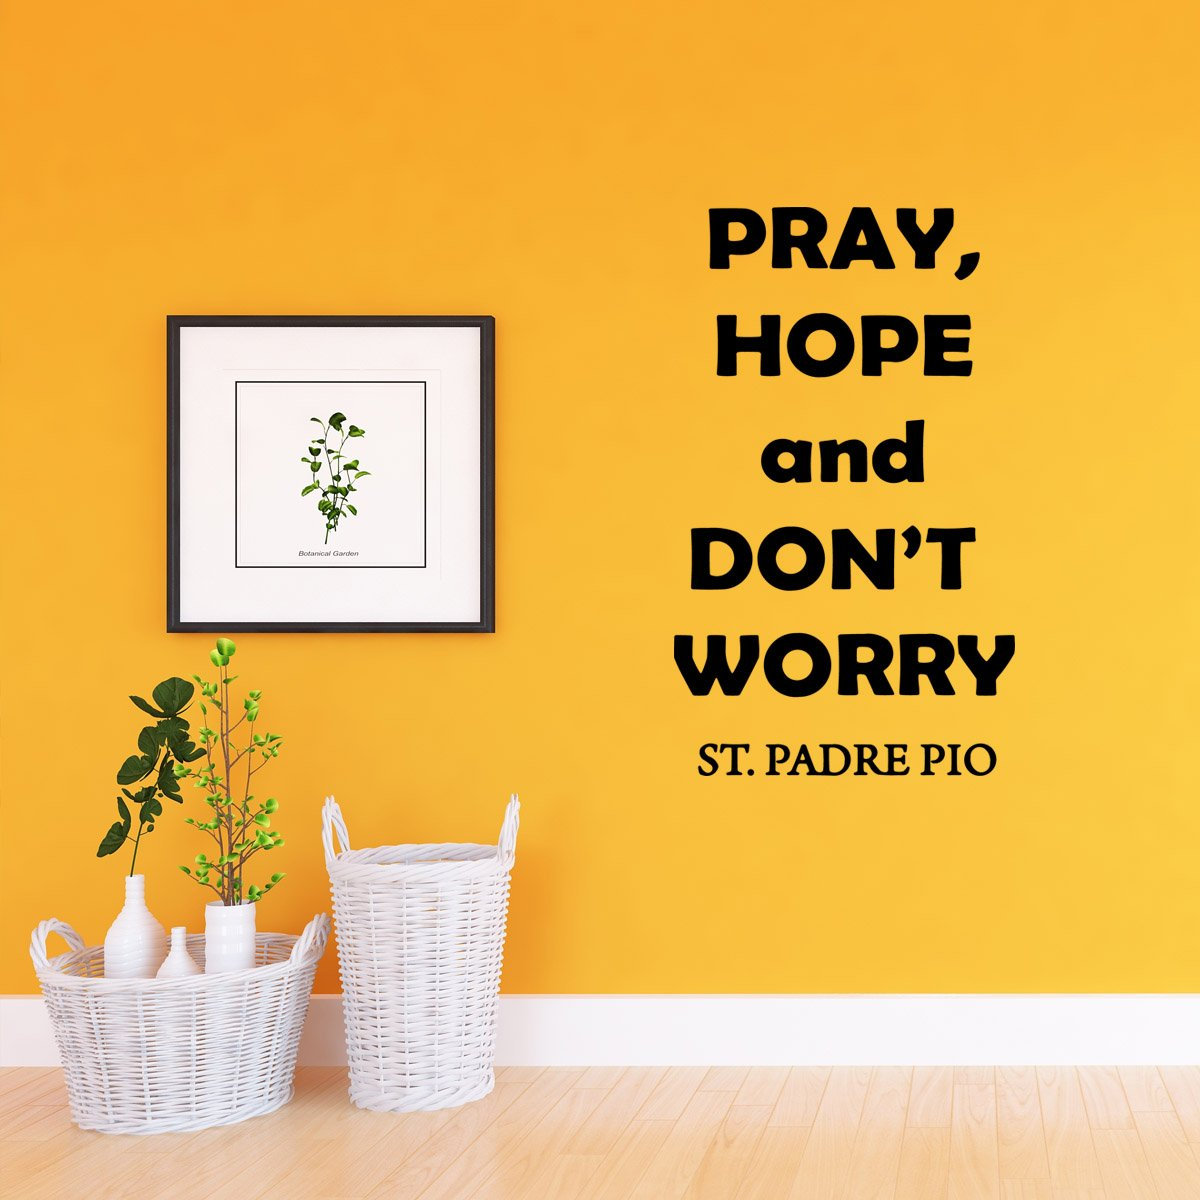 Pray, Hope and Don't Worry Padre Pio Quote Wall Decal